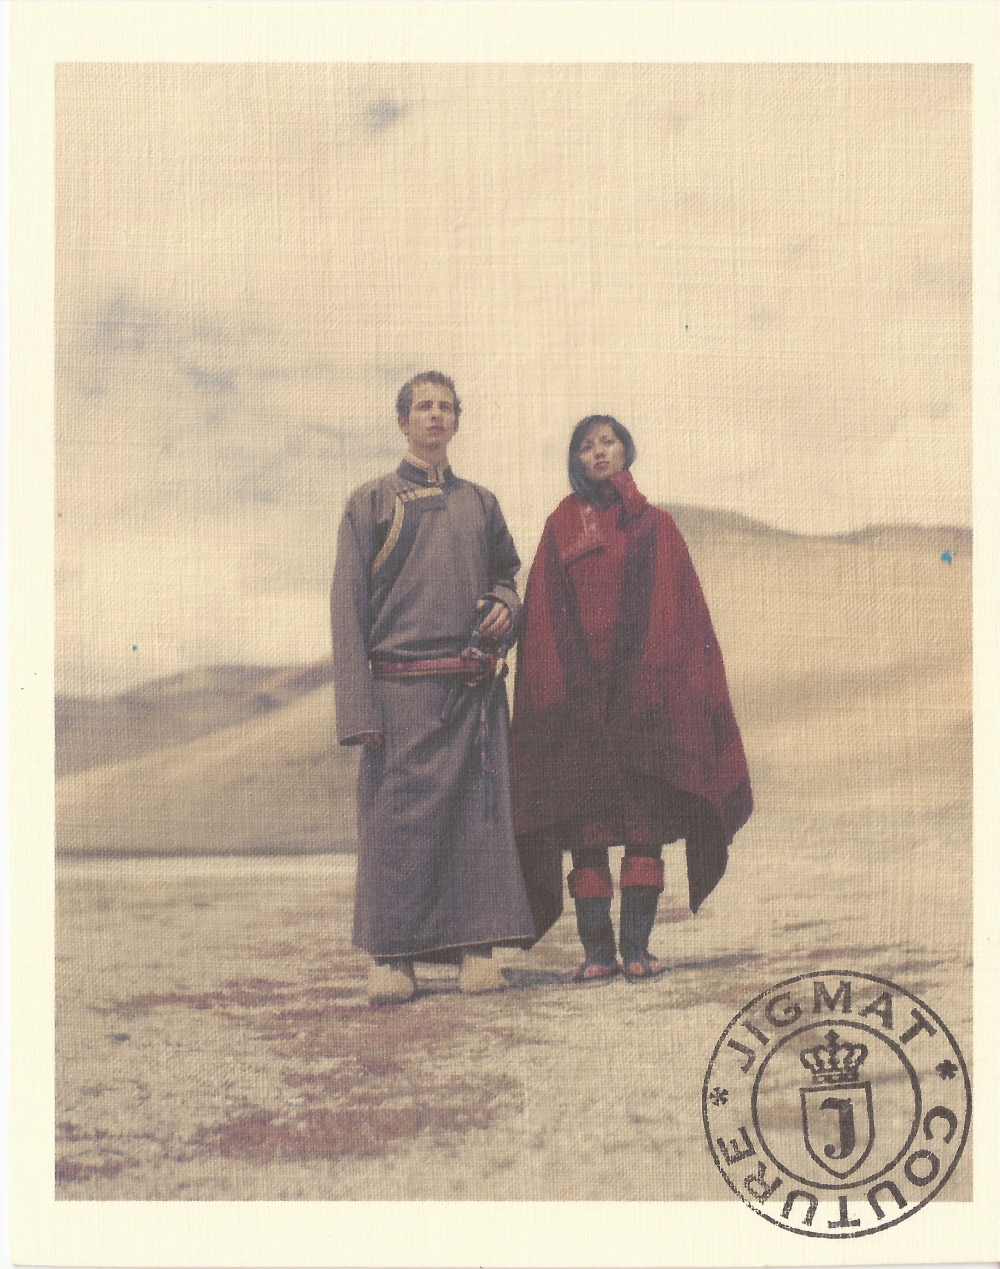 A contemporary creation by the husband and wife team of Jigmat Norbu and Jigmet Wangmo, based on traditional style (Photographer: Sebran D'Argent; Courtesy: Jigmat Couture, 2012-13).